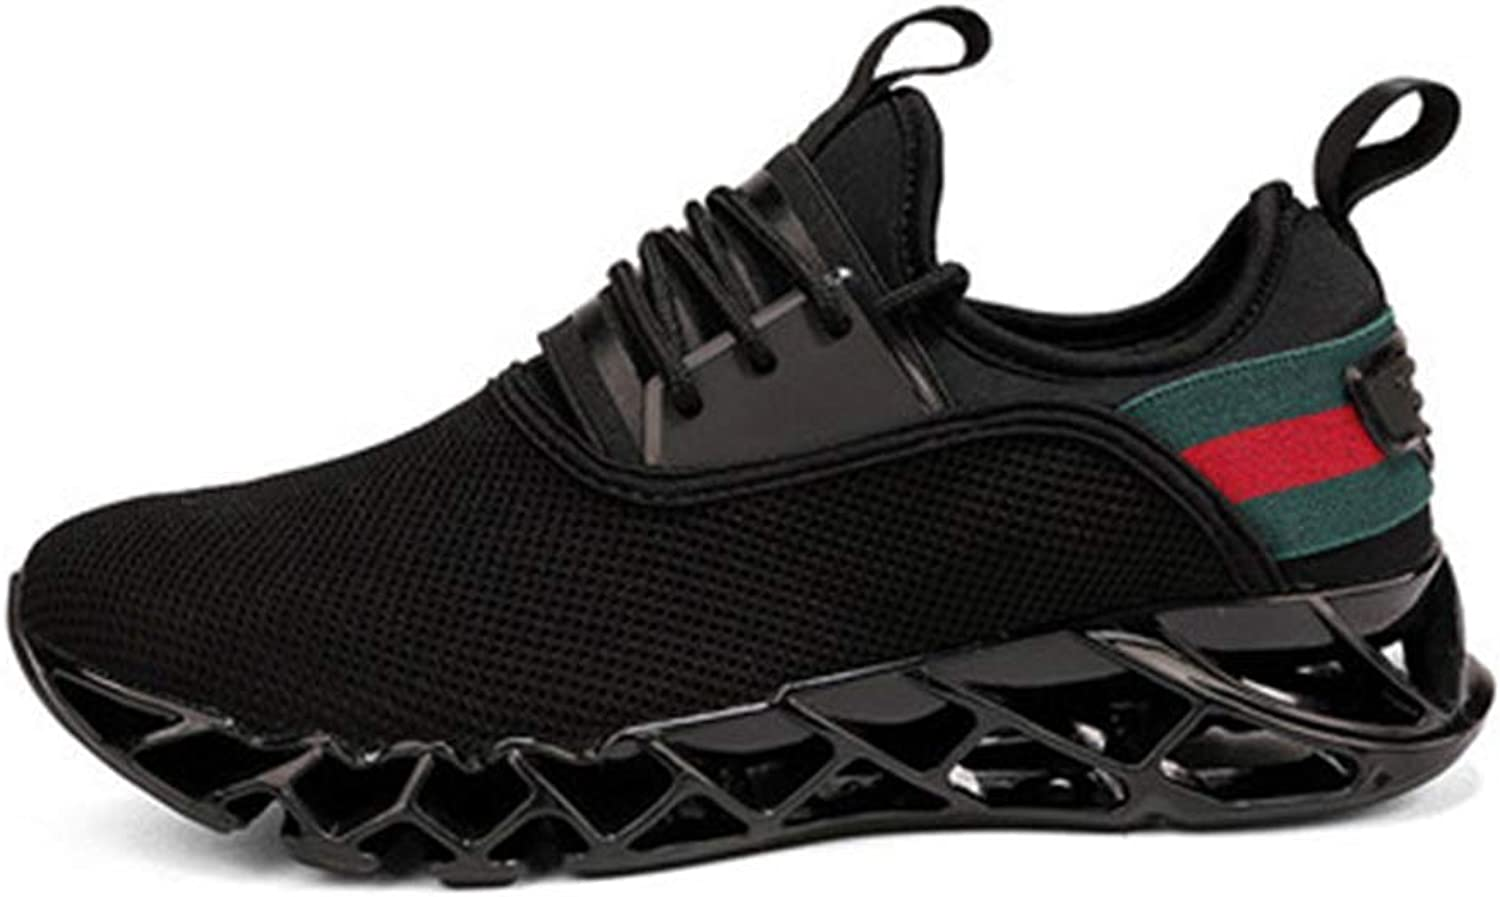 ZHRUI Running shoes for Mens Professional Athletic Sneakers Super Light Sport Walking Trendy Cushioning Athletic shoes Casual Walking shoes (color   Black, Size   8.5=42 EU)